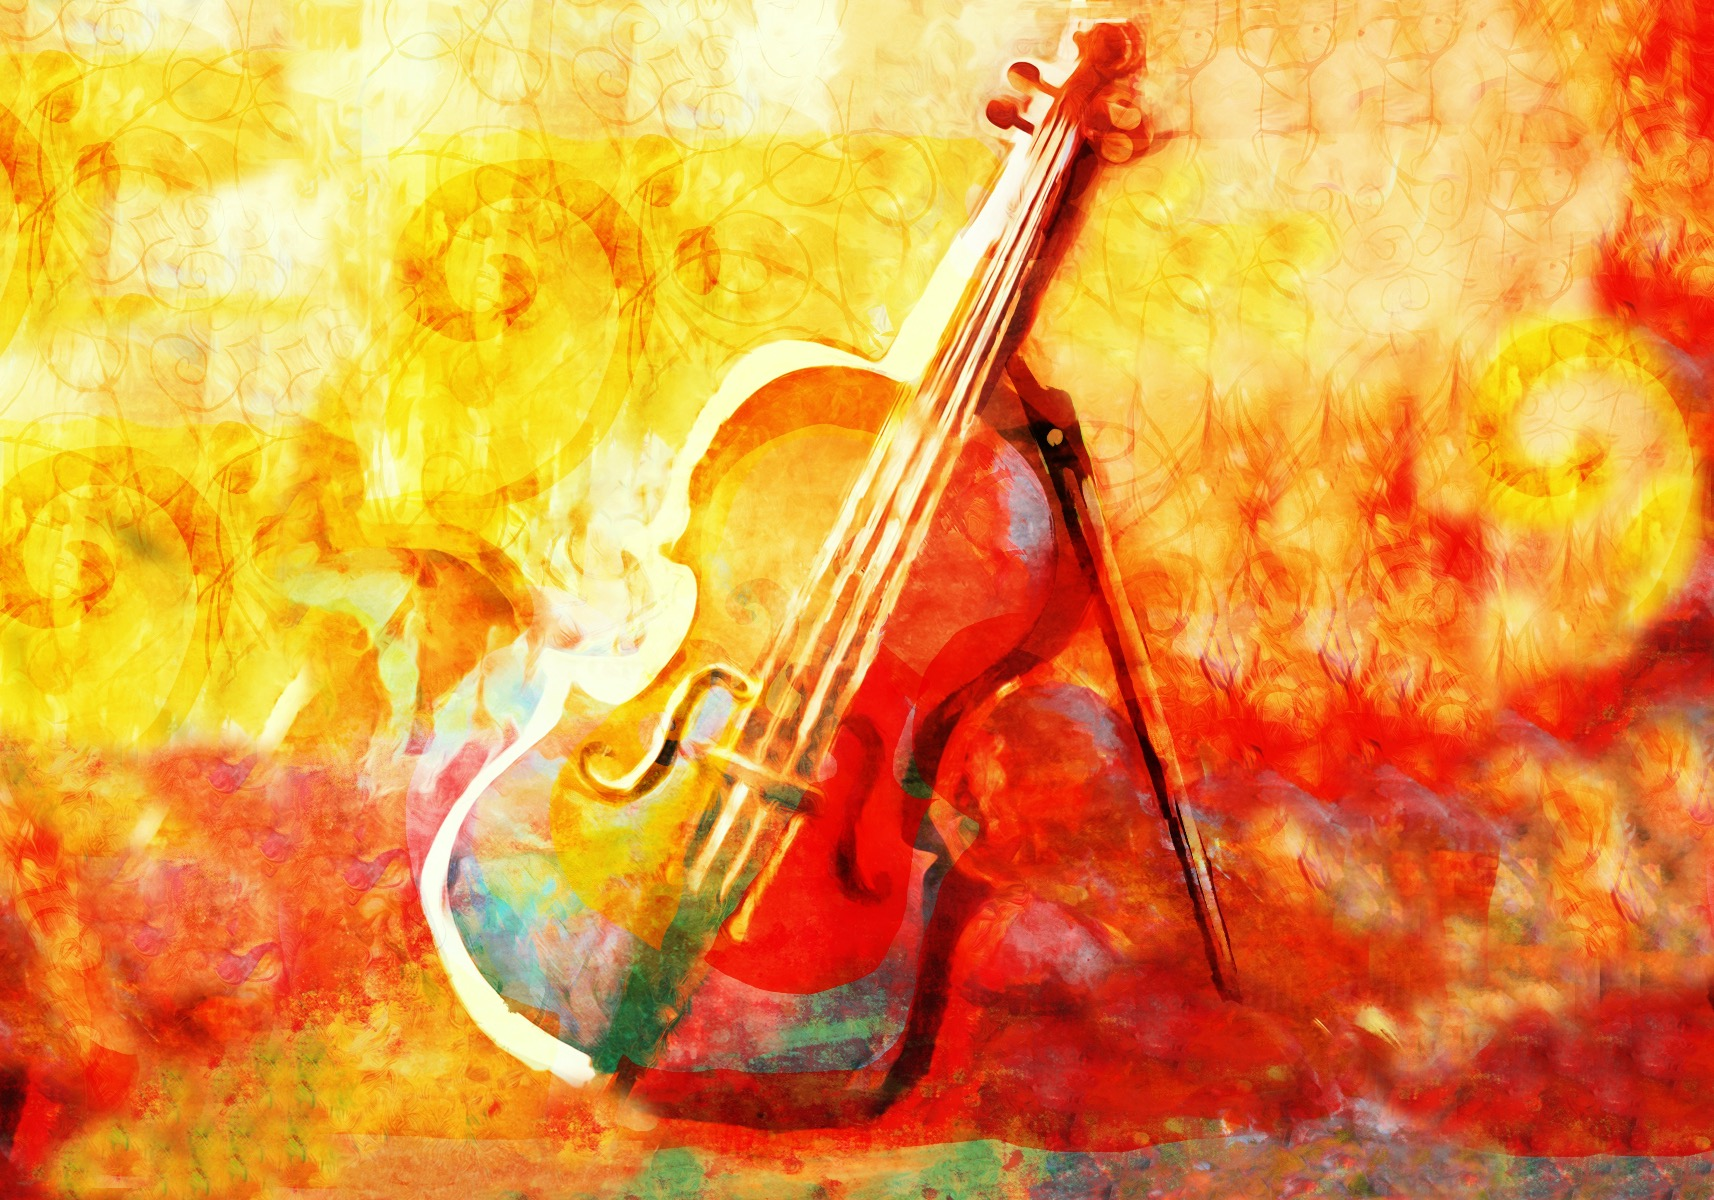 Abstract violin painting with vibrant colours